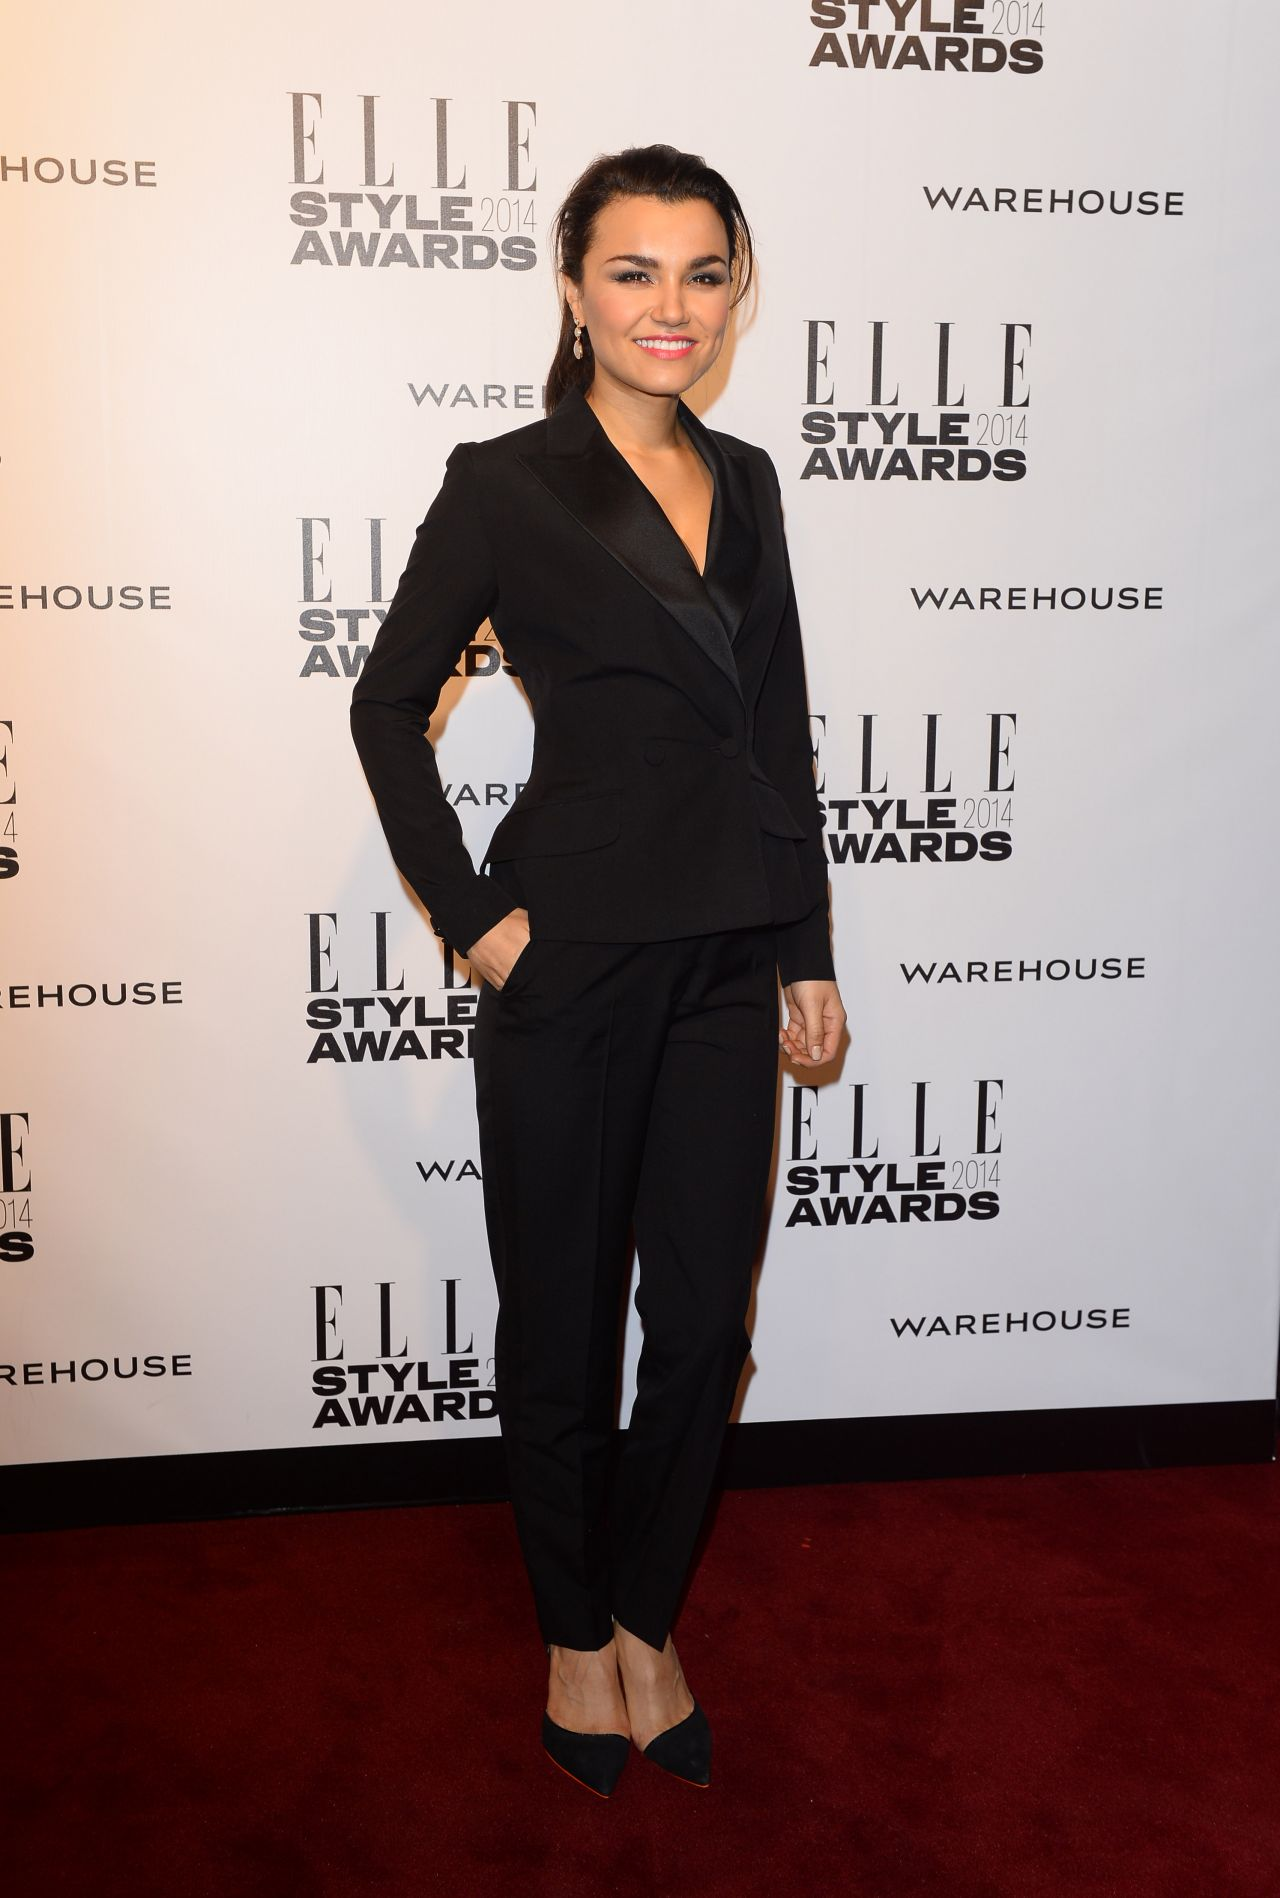 Samantha Barks - ELLE Style Awards 2014 at One Embankment in London